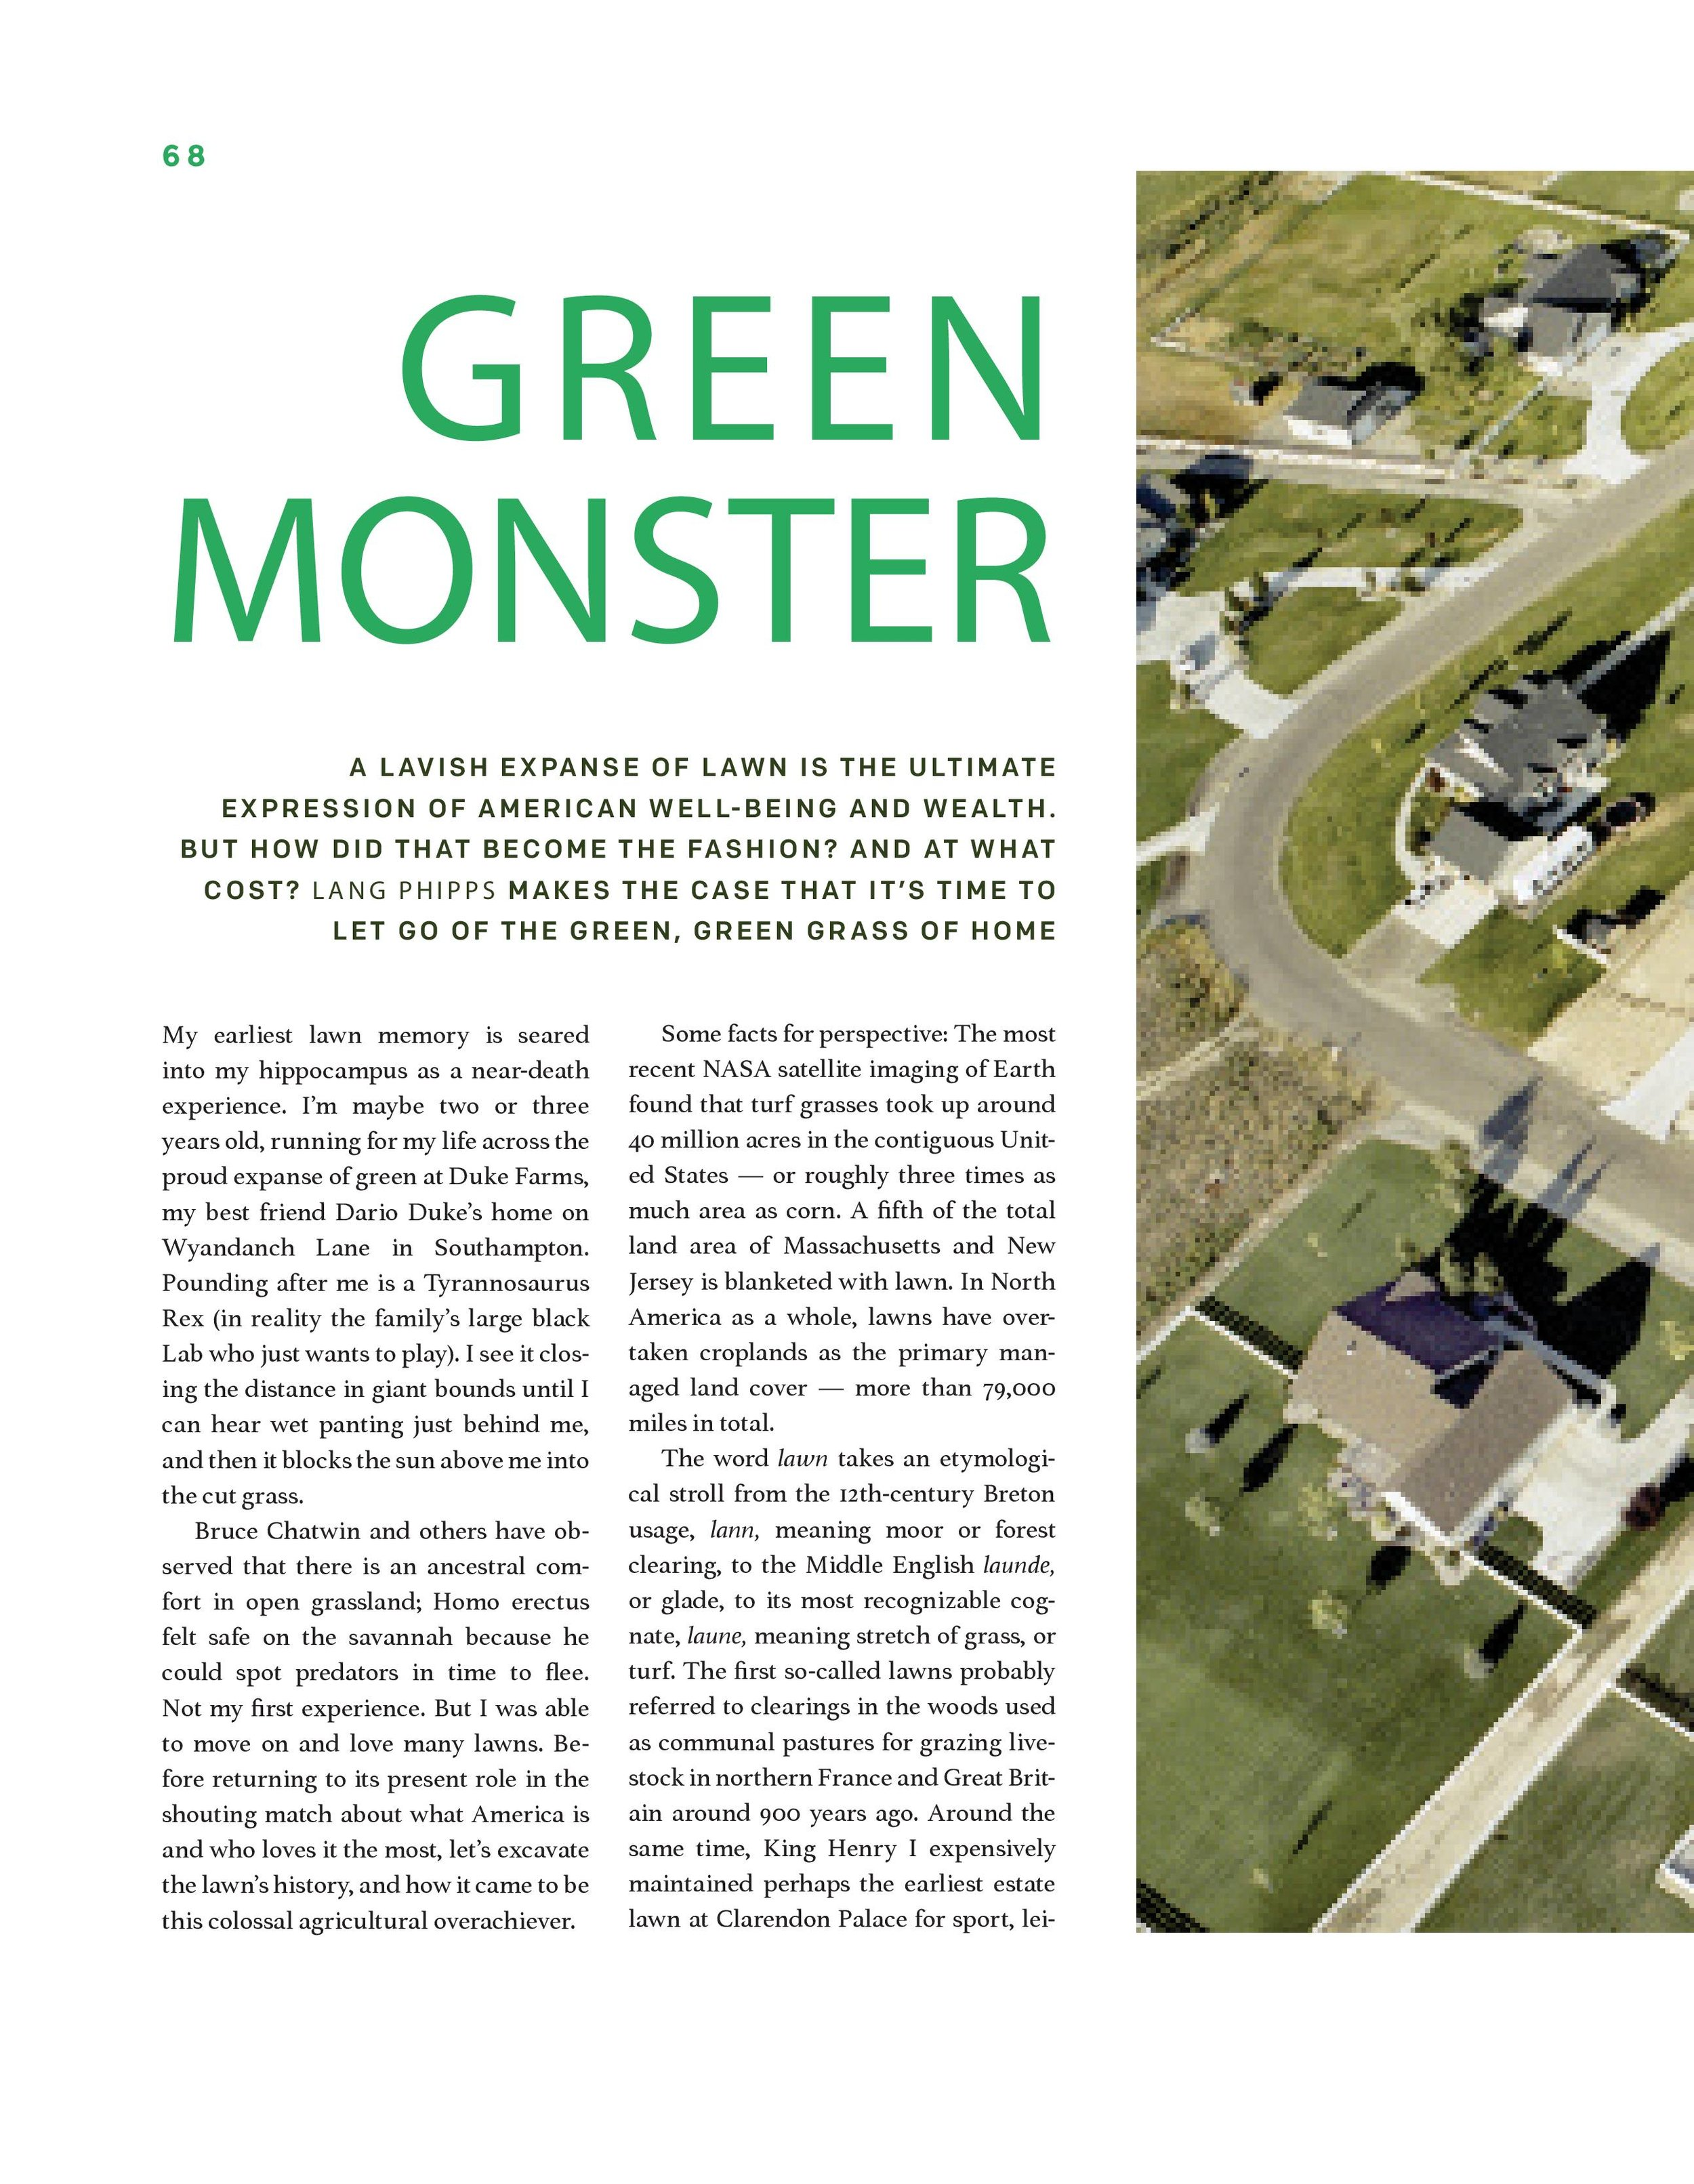 GREEN_MONSTER for LANG-2.jpg